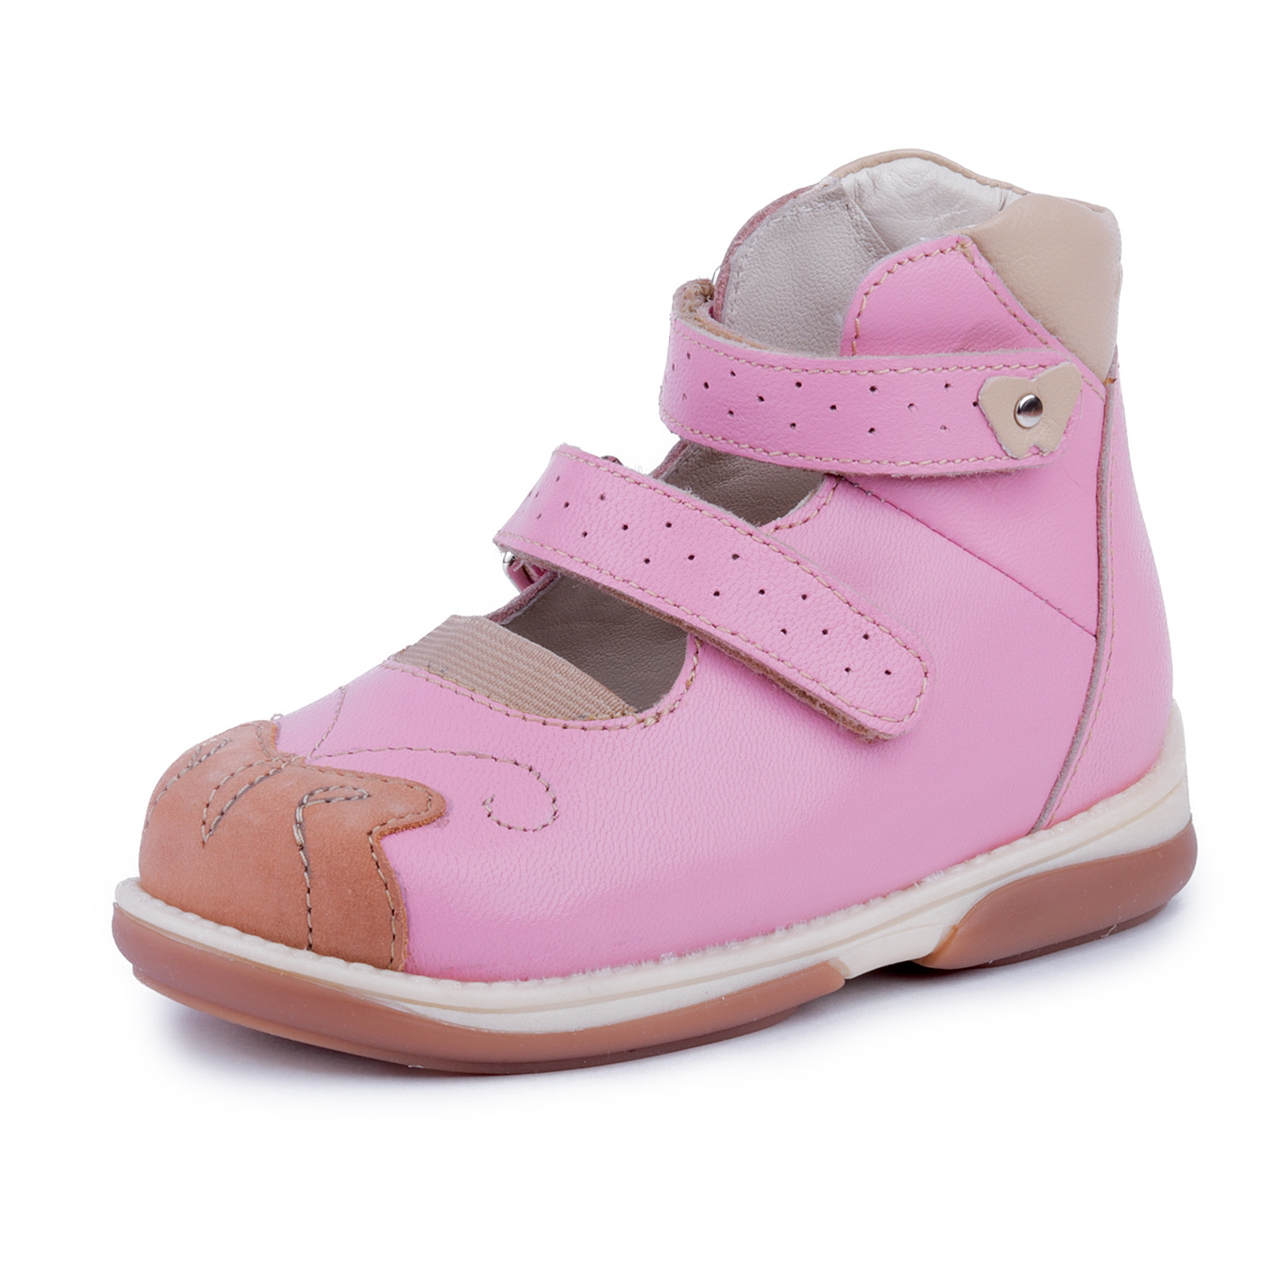 Memo Shoes. Memo Princessa Pink Shoes — Memo-Shoes.com.Orthopedic Shoes For Kids